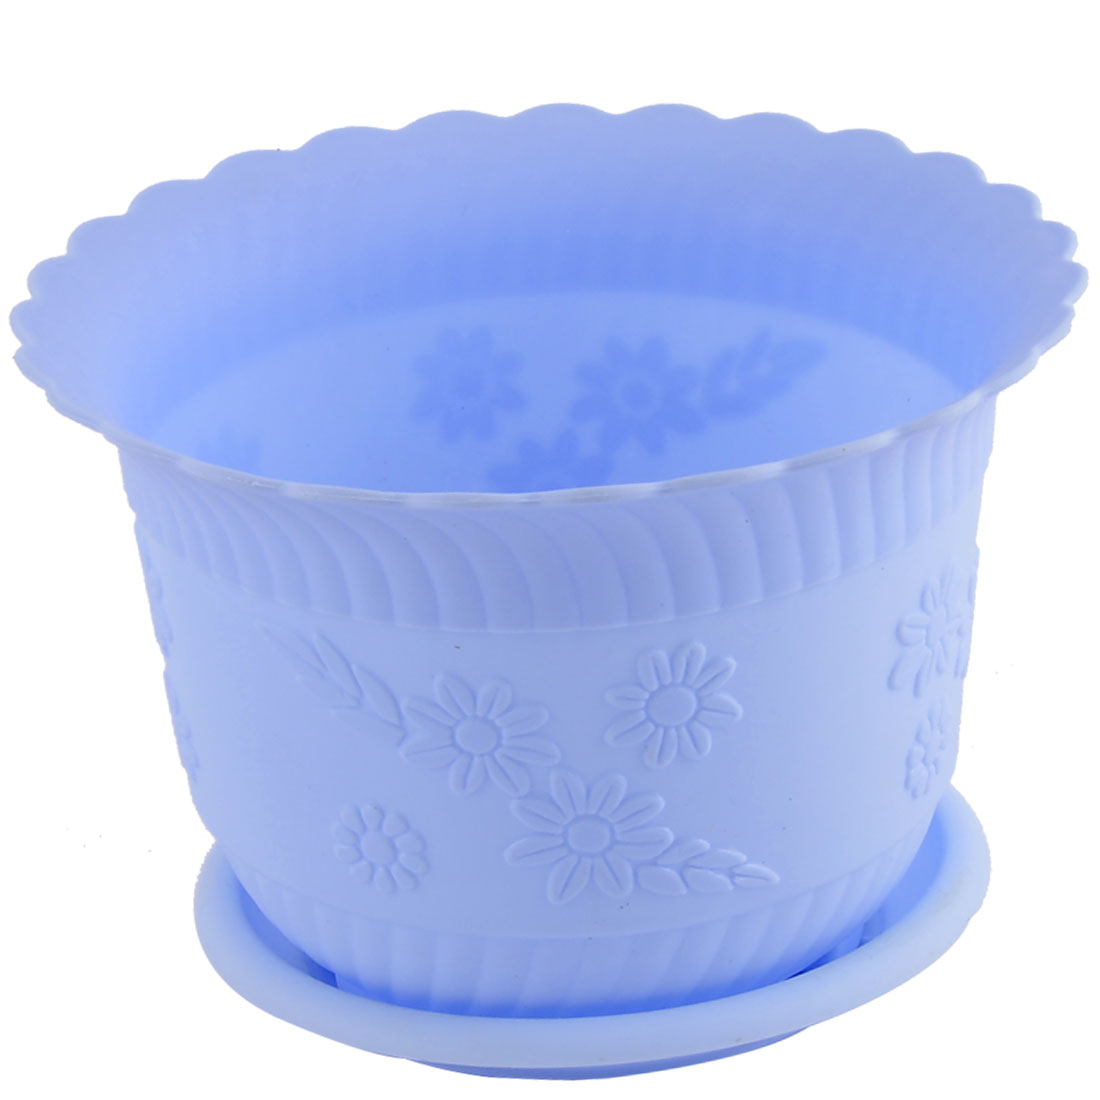 Home Office Garden Plastic Floral Pattern Plant Flower Pot Sky Blue w Tray